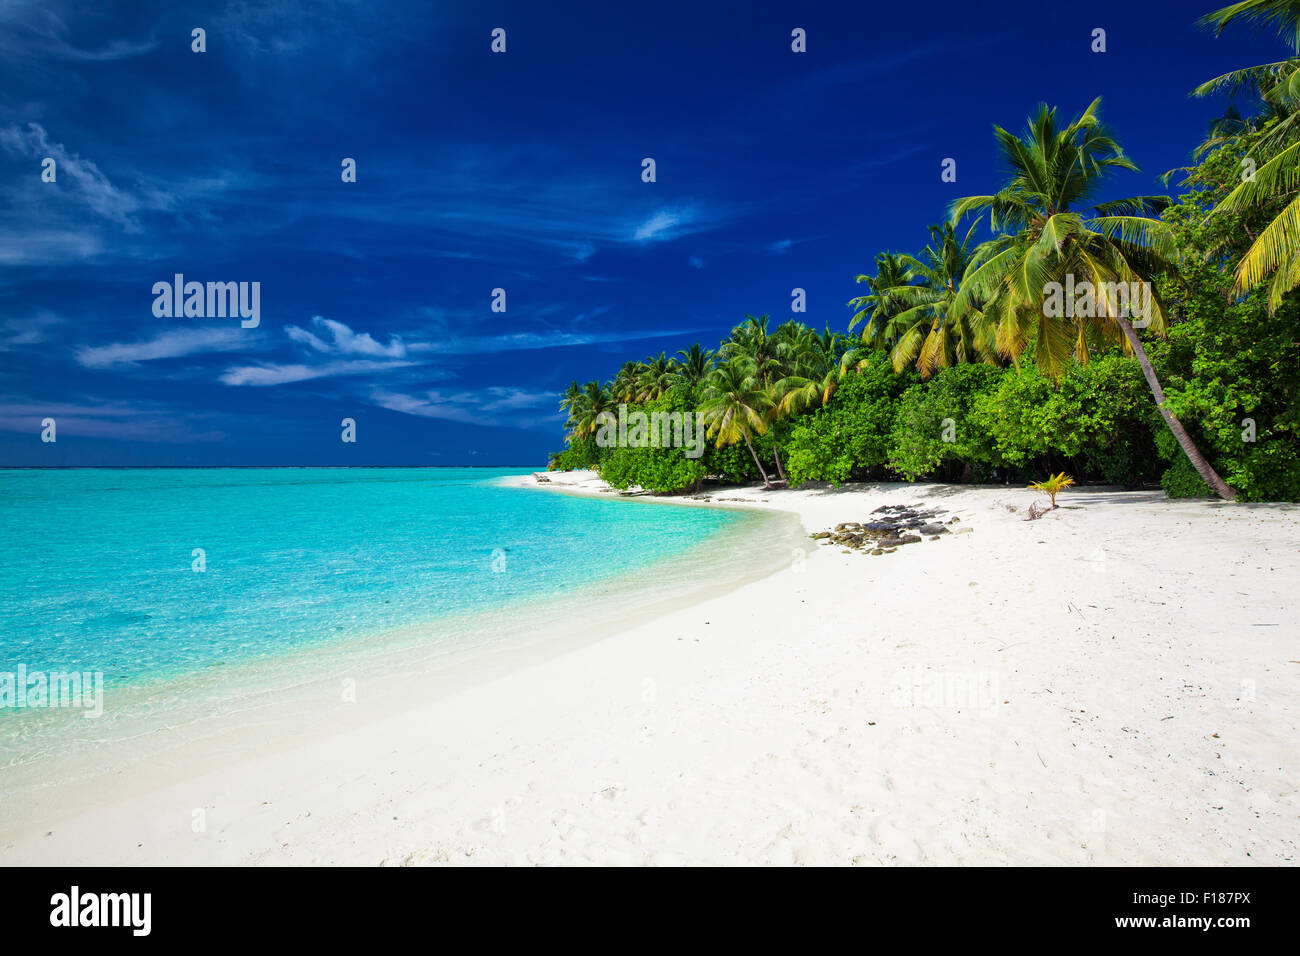 Amazing beach on a tropical island with palm trees overhanging lagoon Stock Photo